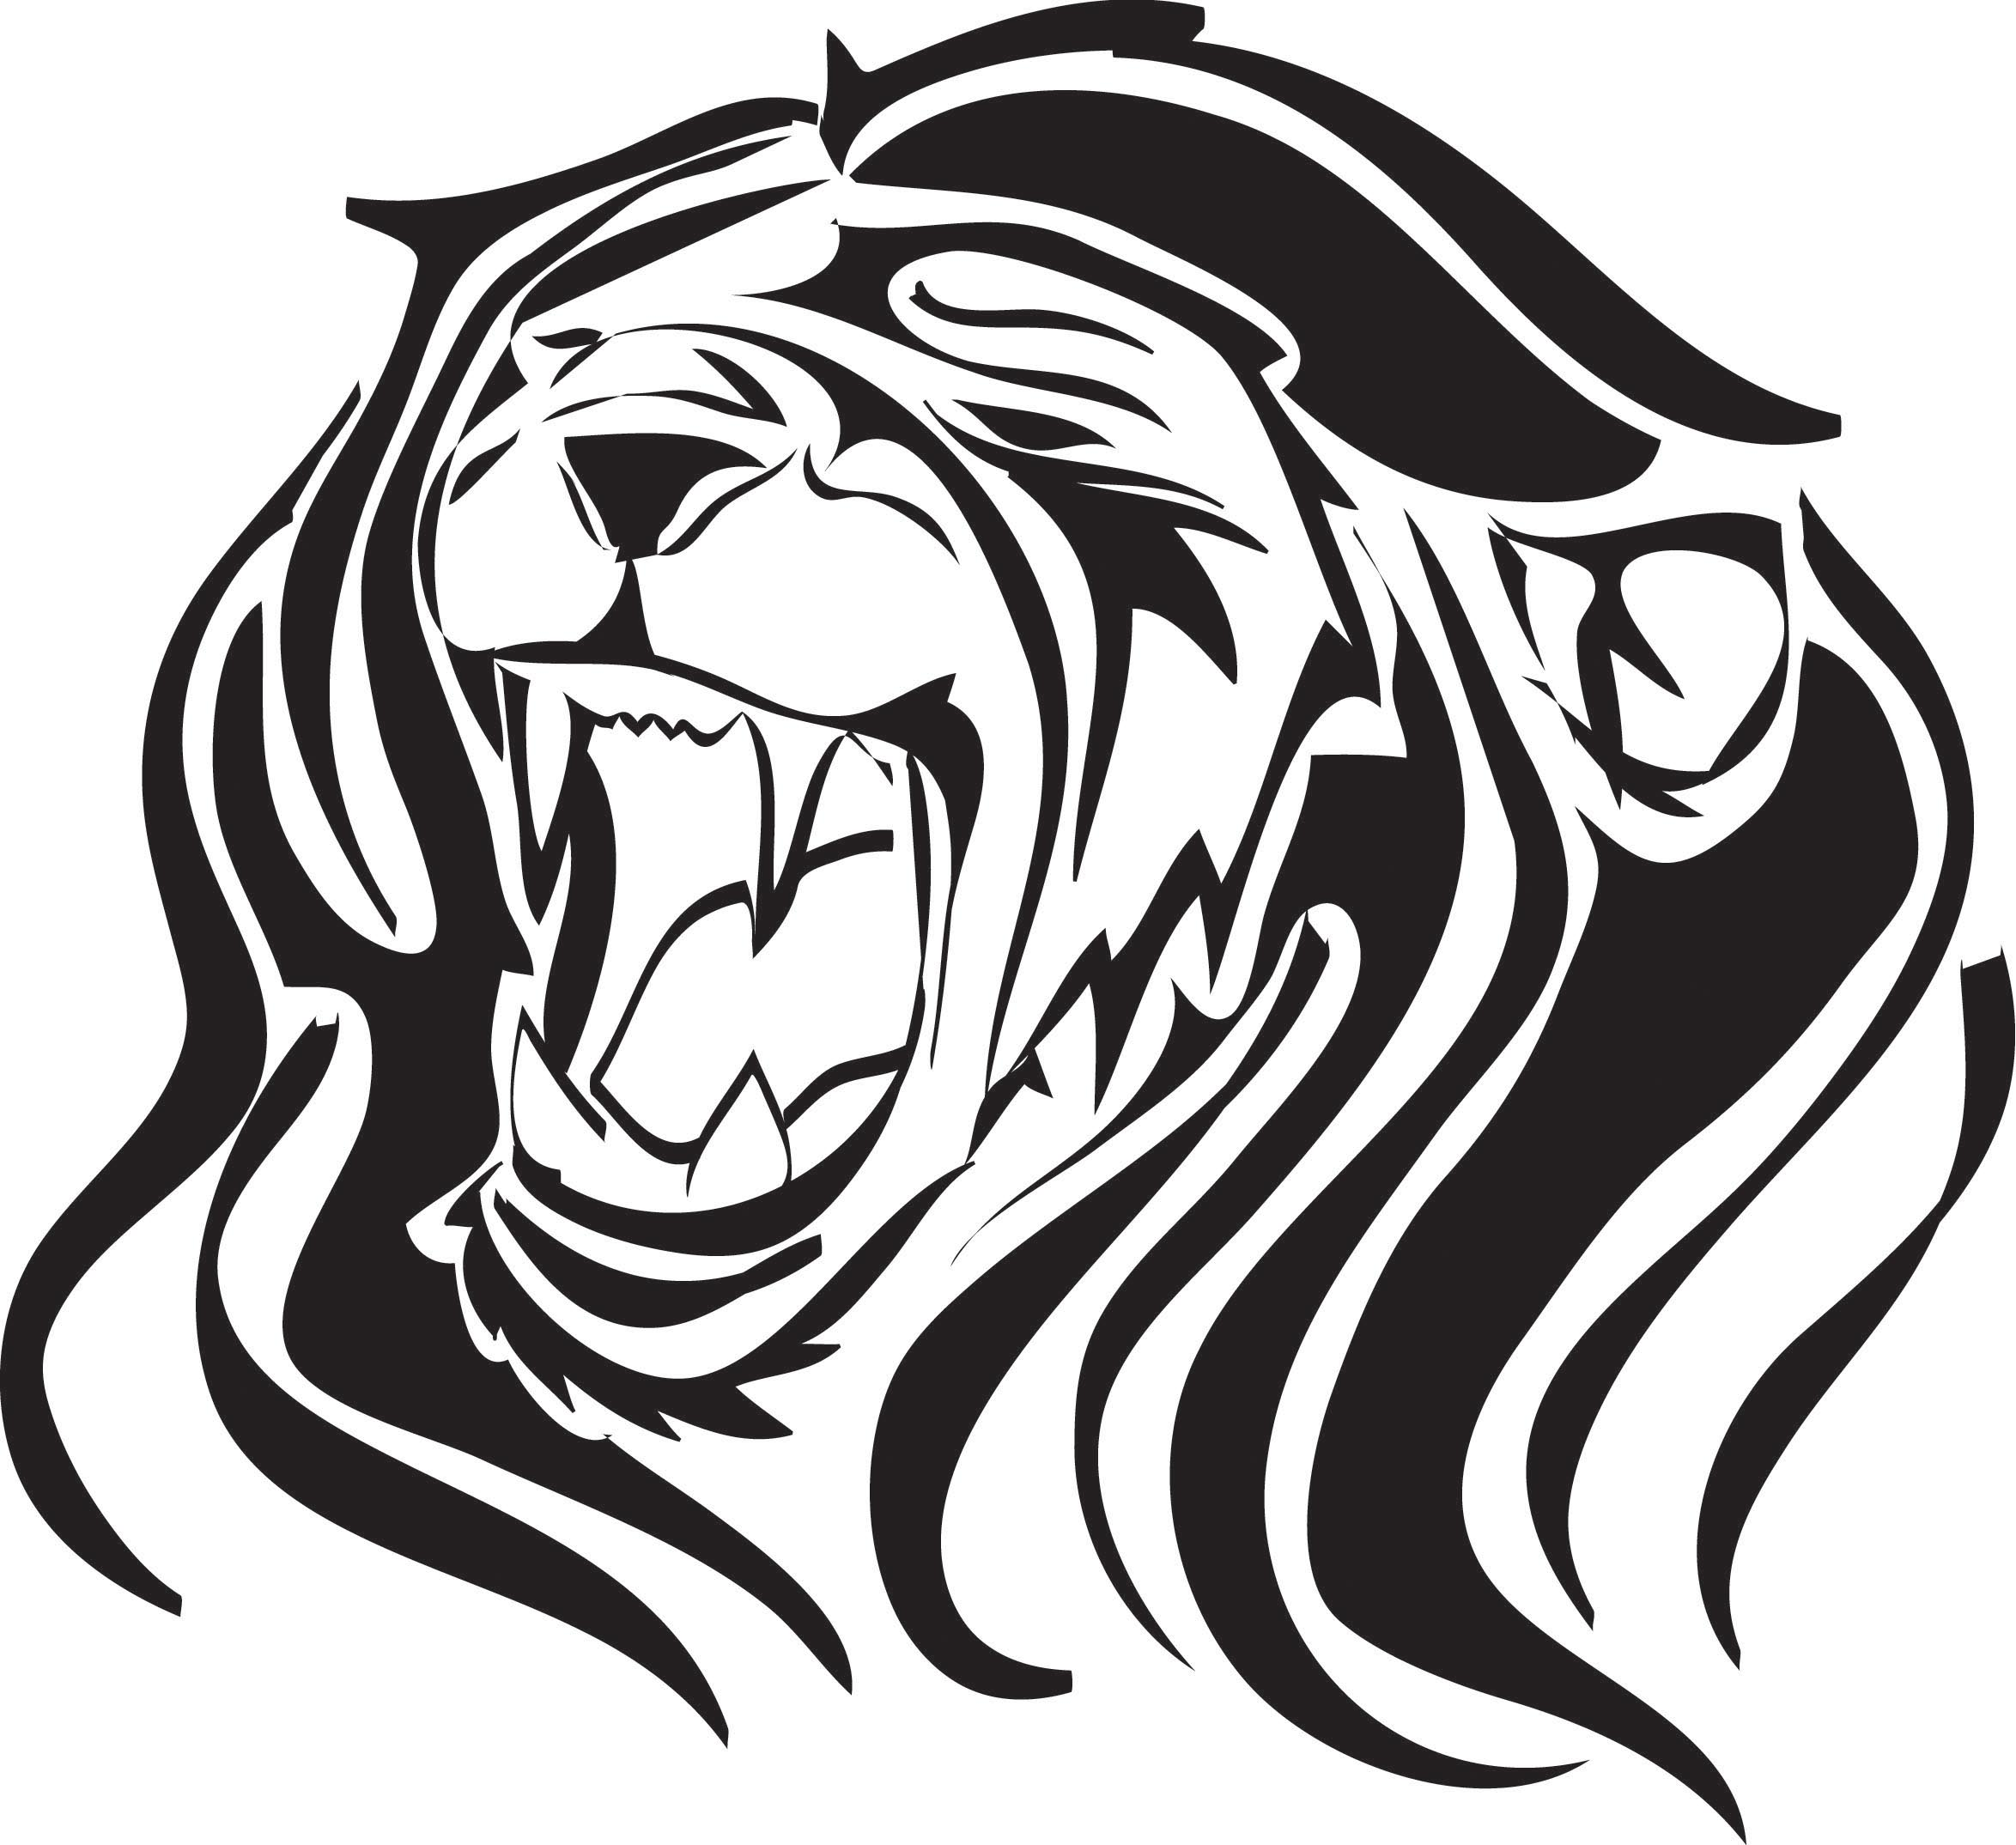 Lion Roaring Drawing At Getdrawings Com Free For Personal Use Lion